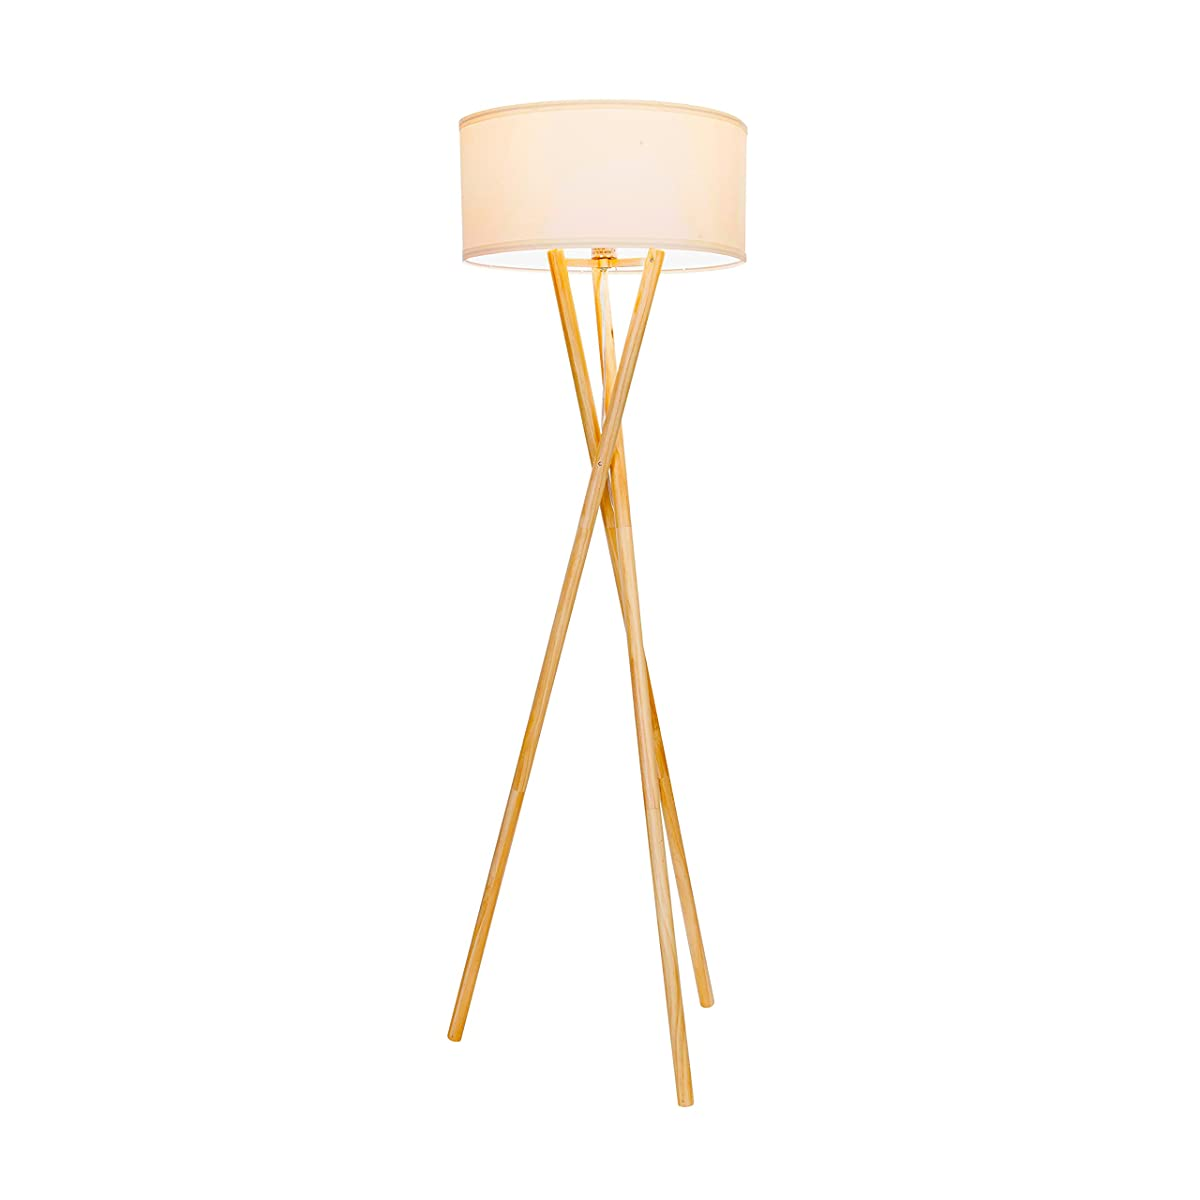 Brightech Harper LED Tripod Floor Lamp – Wood, Mid Century Modern Light for Contemporary Living Rooms - Tall Standing, Rustic Lamp for Bedroom, Office, Kids Room